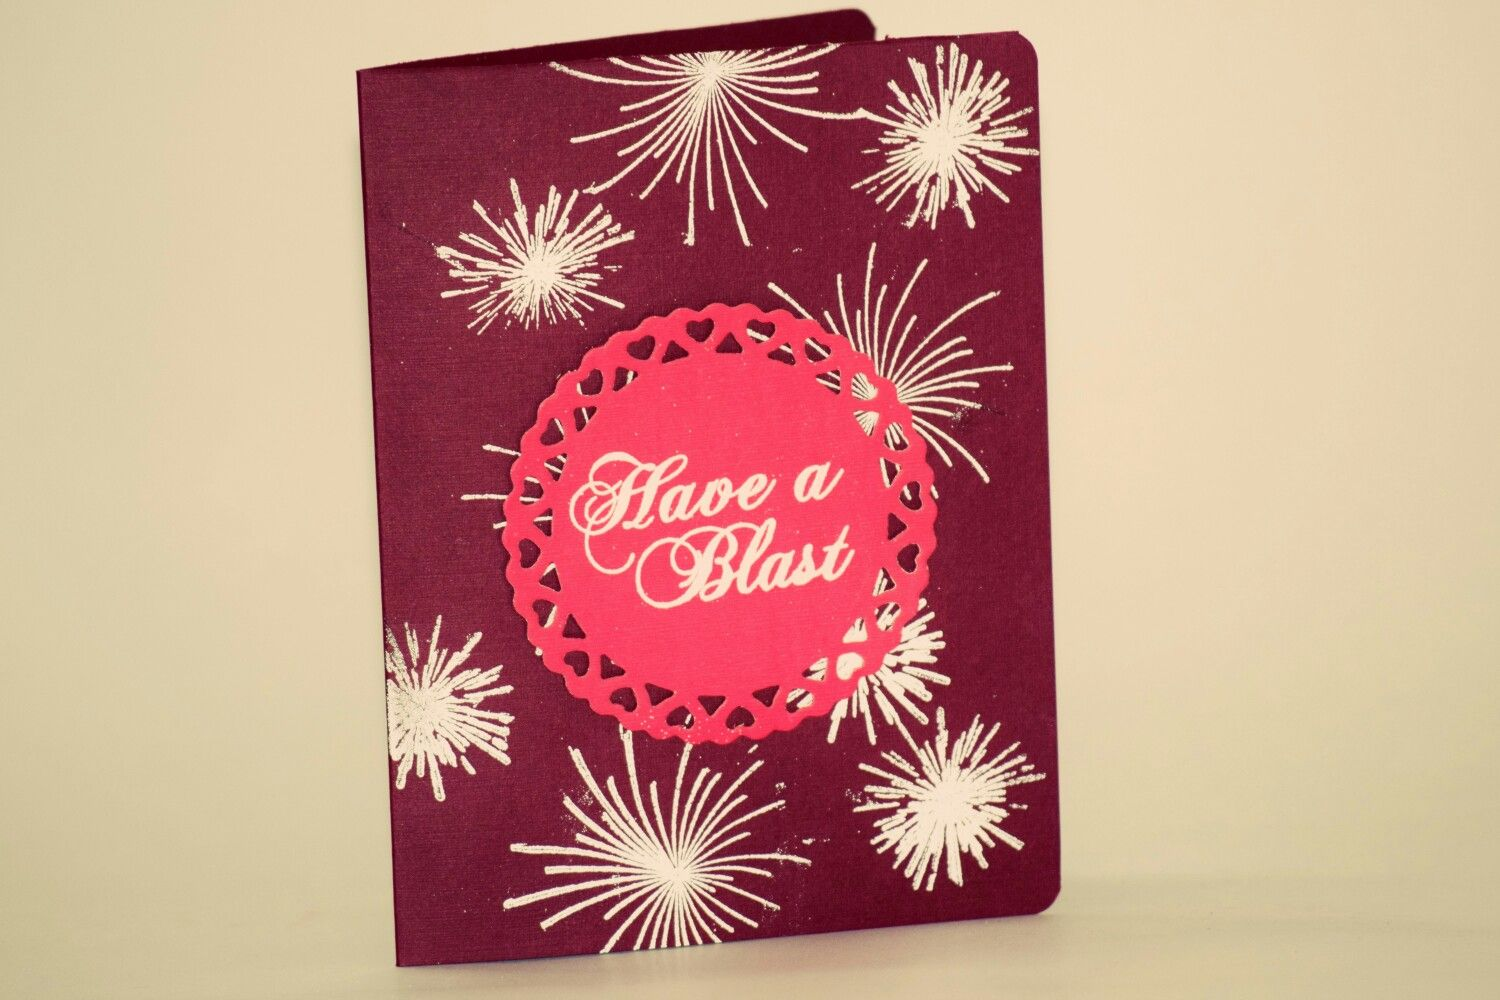 Diwali firecrackers fireworks slider card handmade happy diwali diwali firecrackers fireworks slider card handmade happy diwali diwali celebration diwali card handmade card diwali greeting card have a blast kristyandbryce Image collections